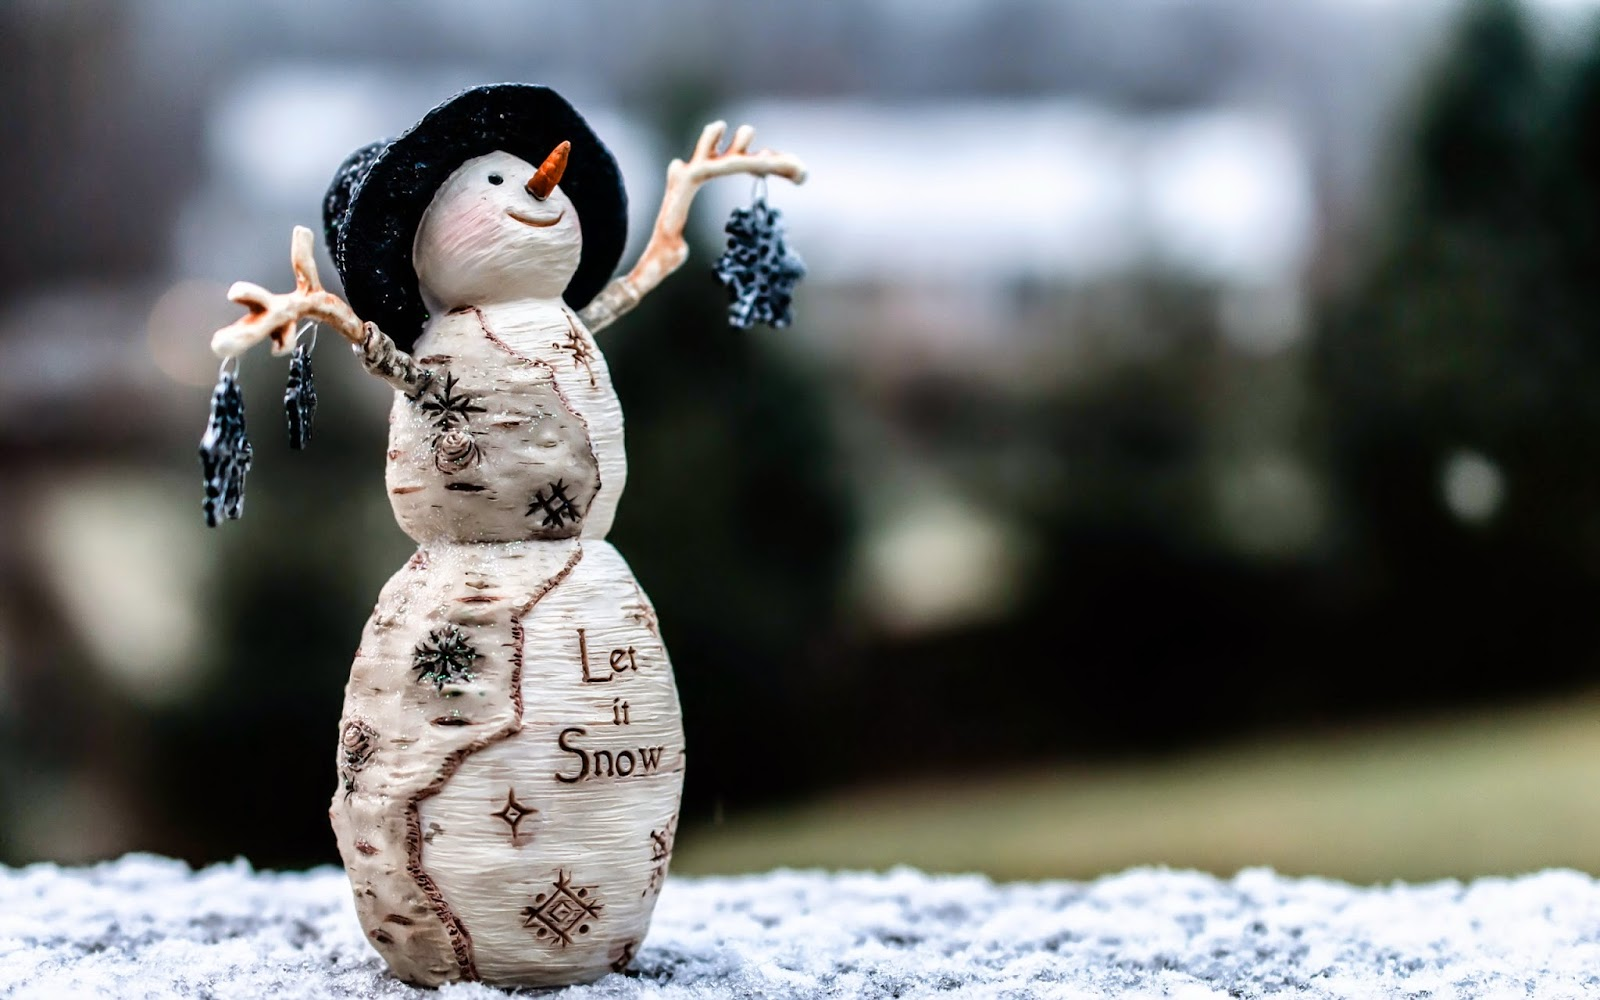 let-it-snow-text-snowman-image-HD-wallpaper-for-desktop-pc-laptop.jpg